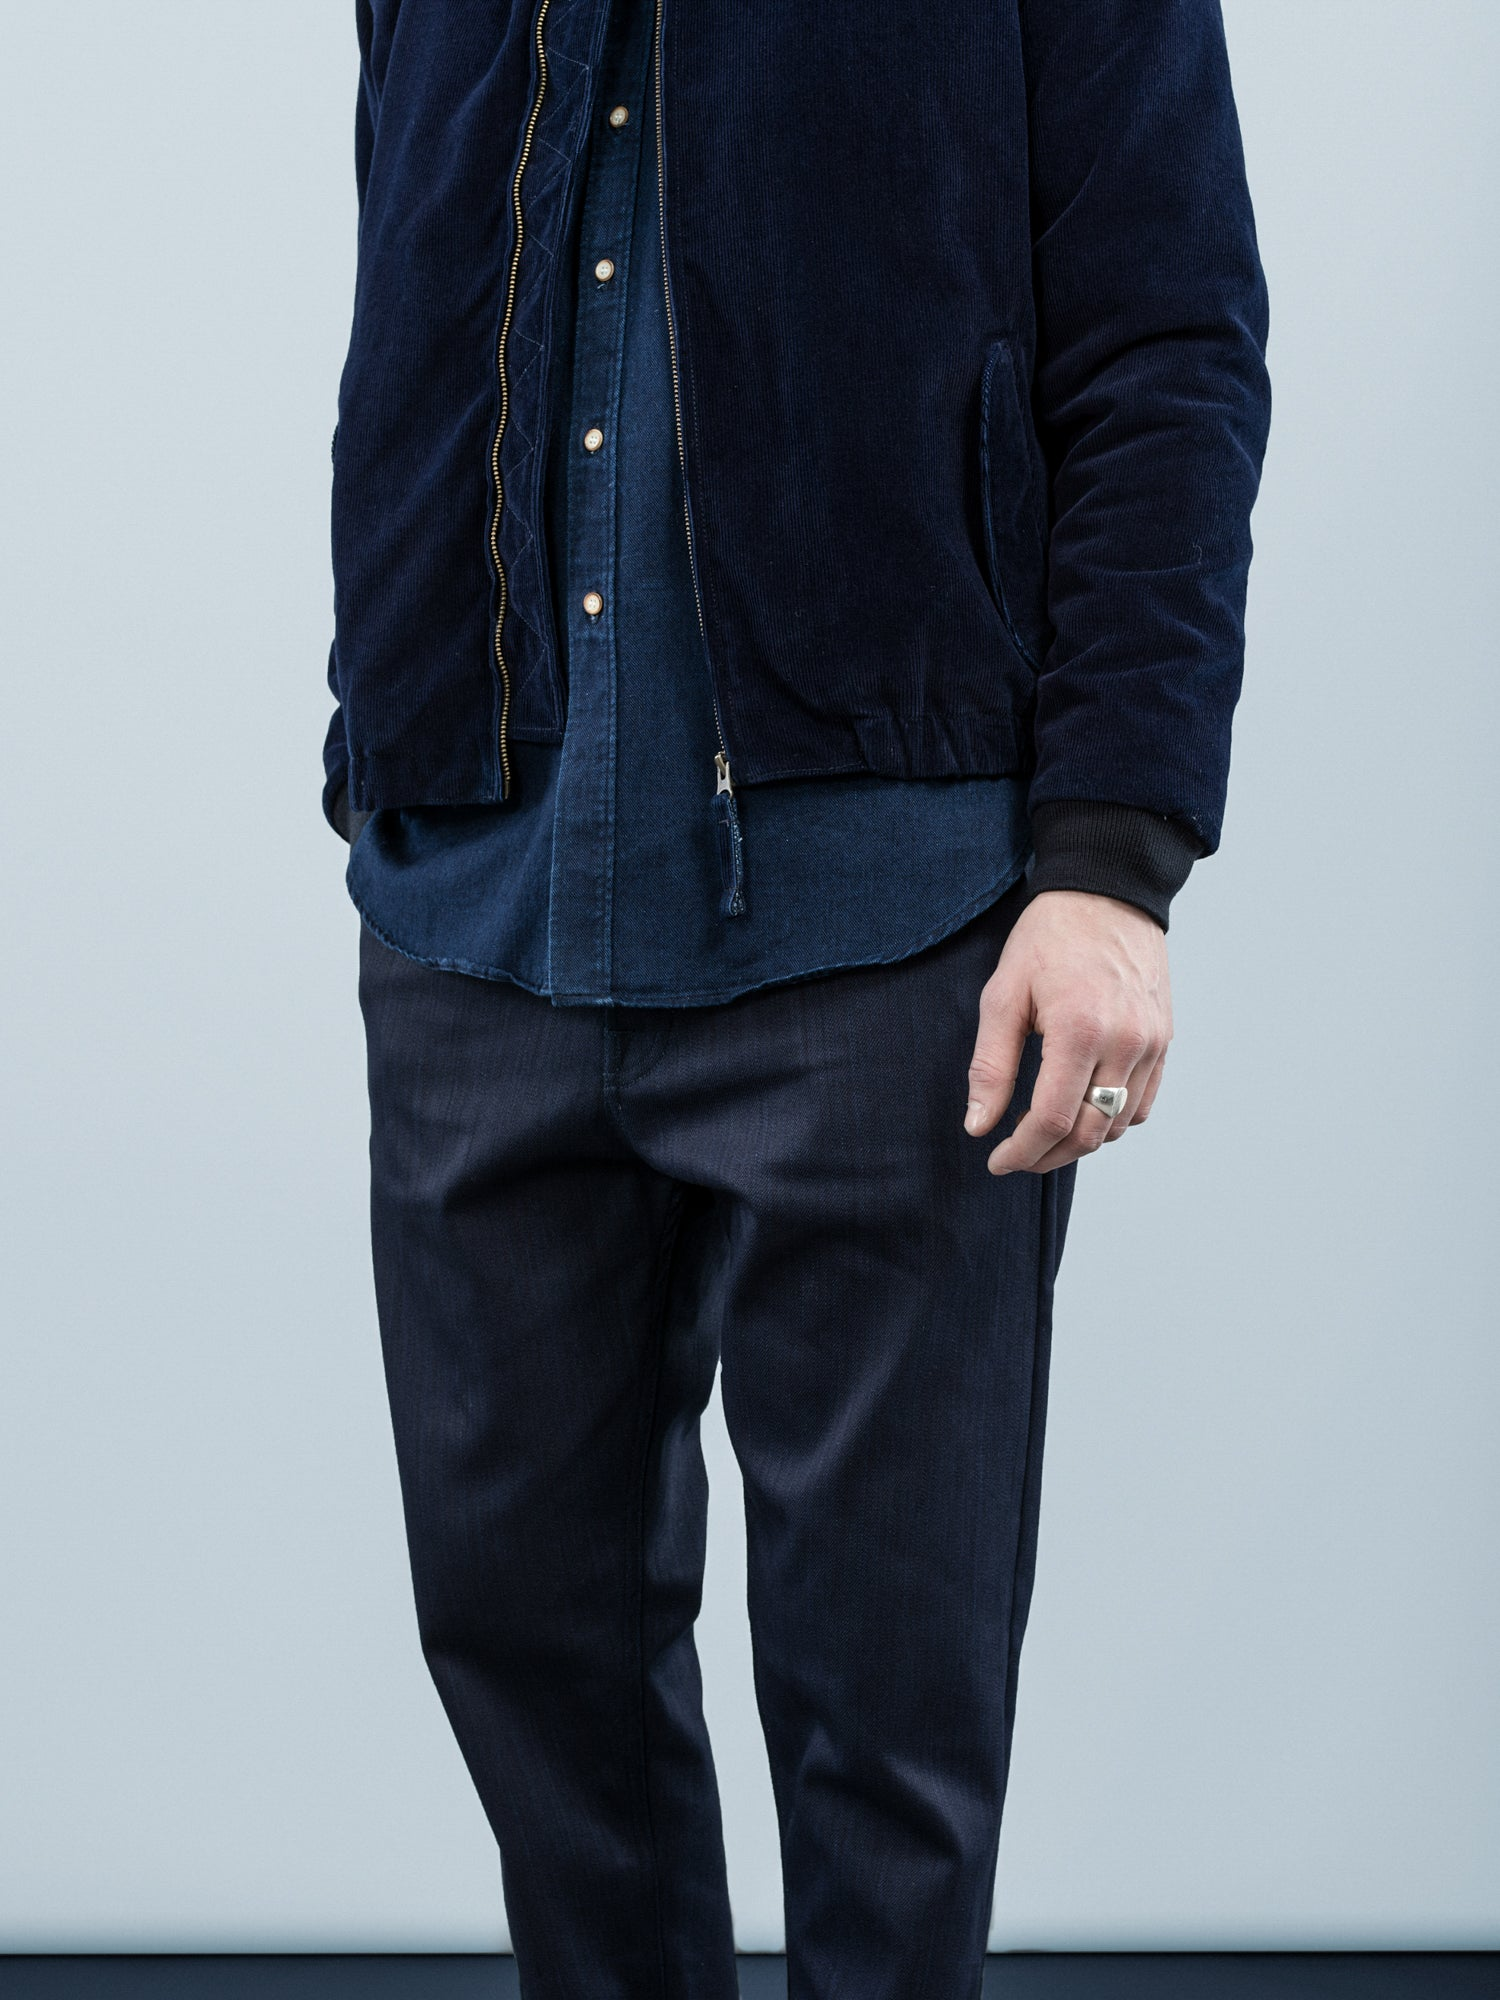 NIKE SPORTSWEAR SELVEDGE DENIM DESTROYER JACKET | Concrete Blog